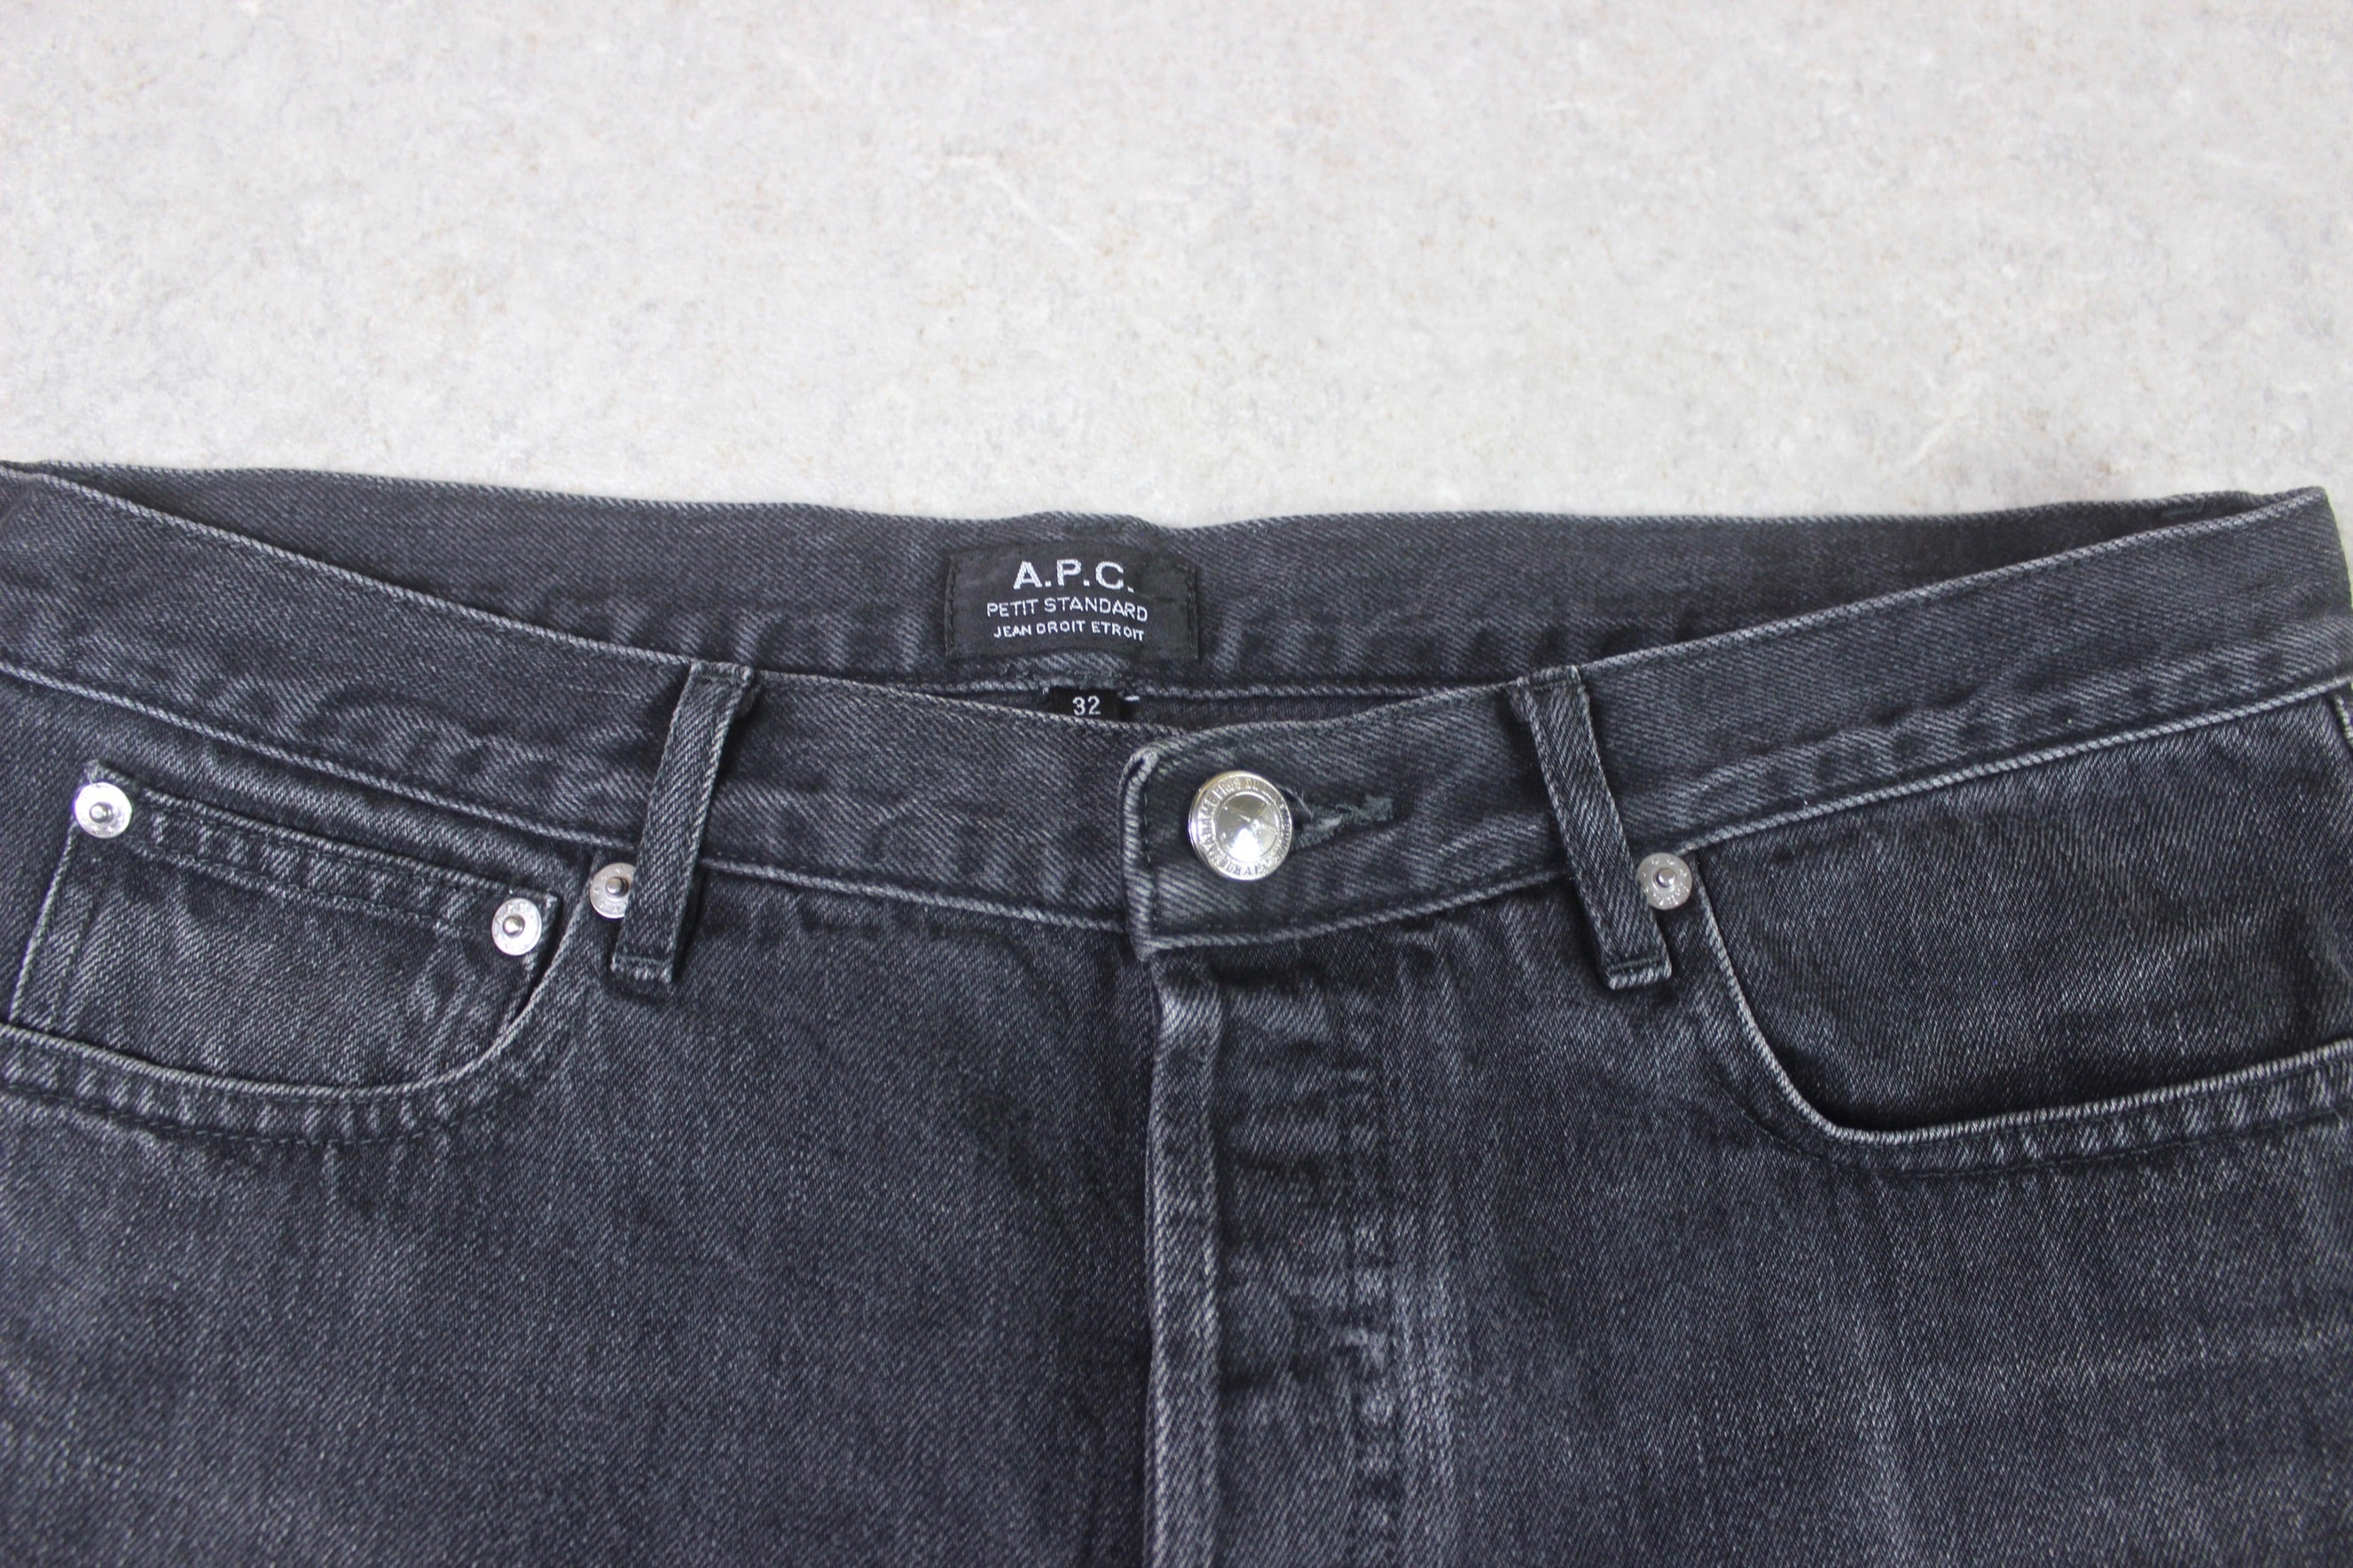 A.P.C. - Petit Standard Butler Jeans - Grey/Washed Black - 32